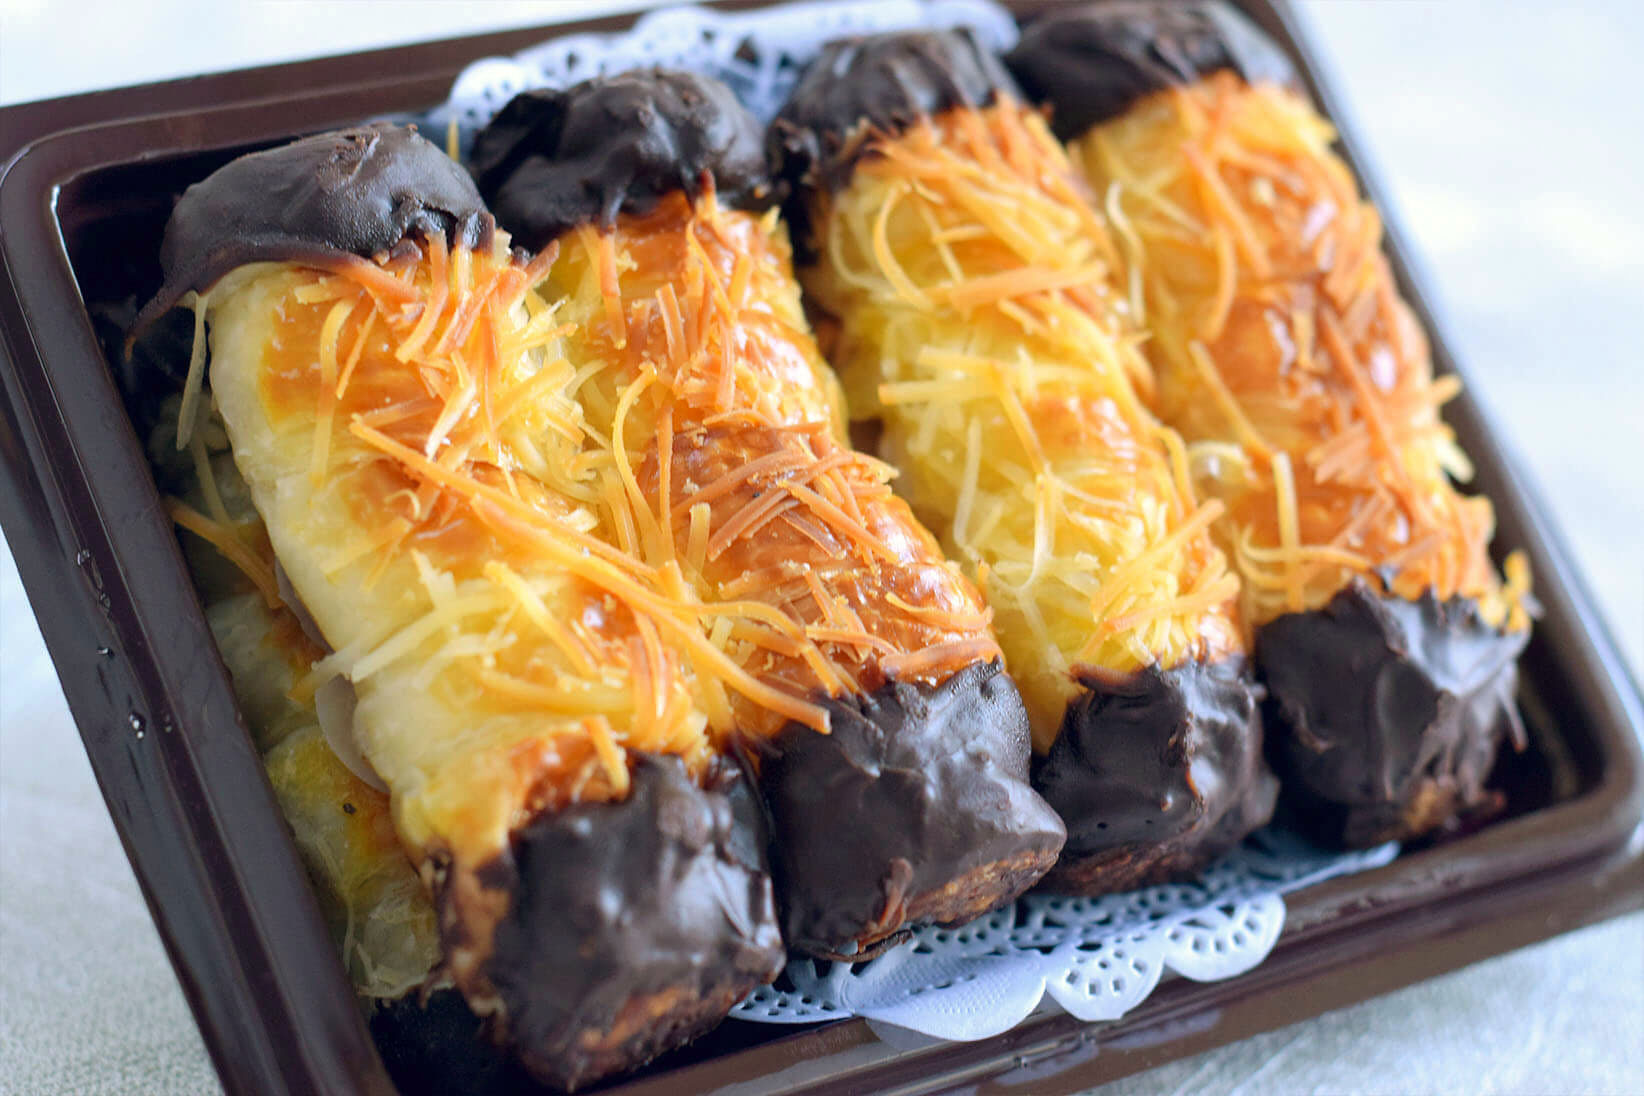 Choco cheese roll pastry